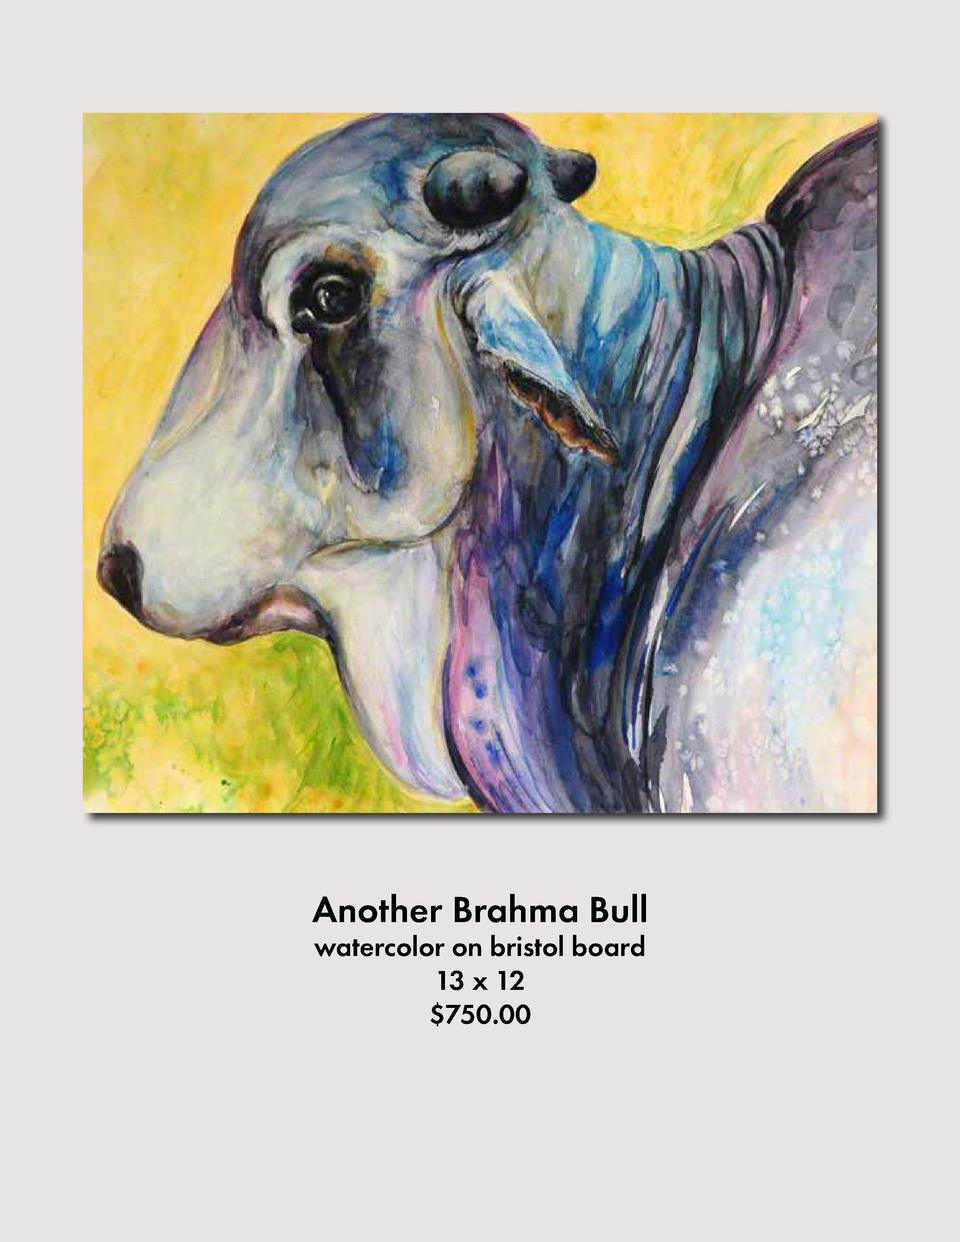 Another Brahma Bull watercolor on bristol board 13 x 12  750.00